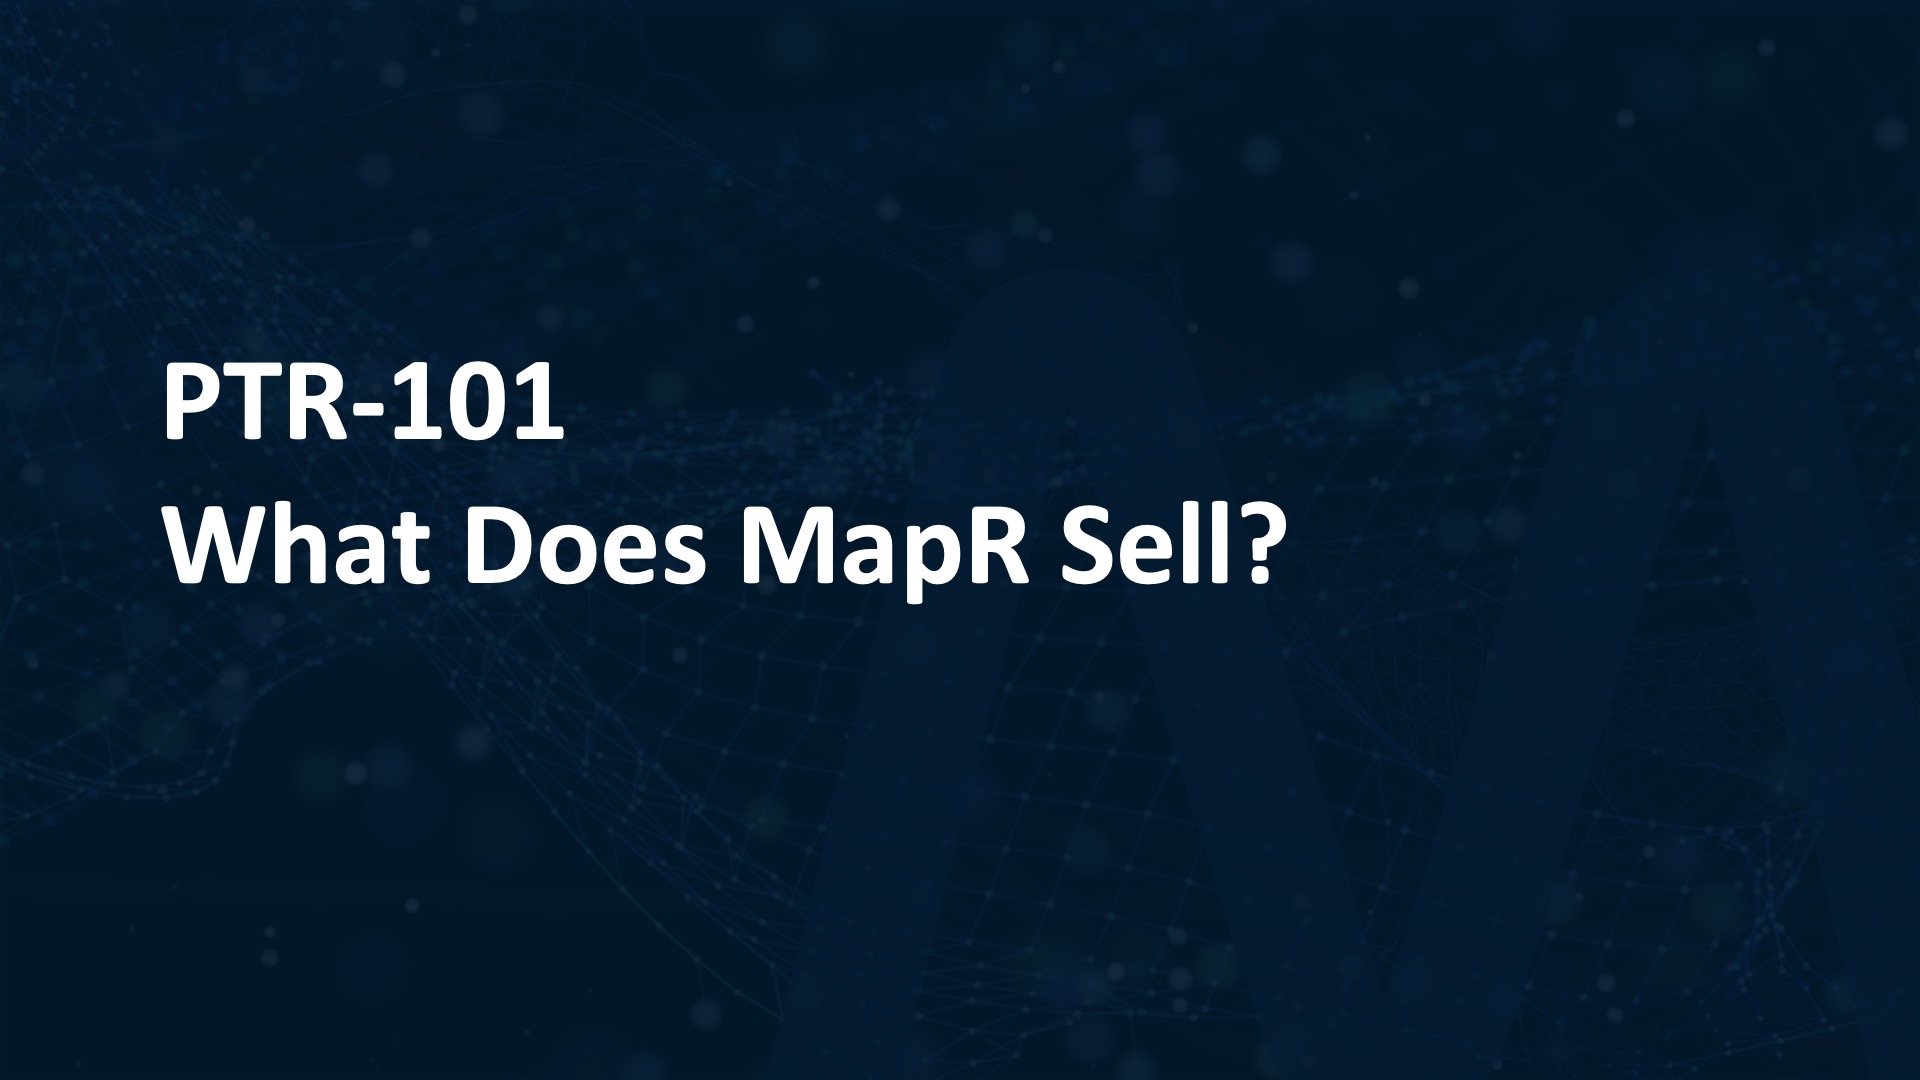 What Does MapR Sell?